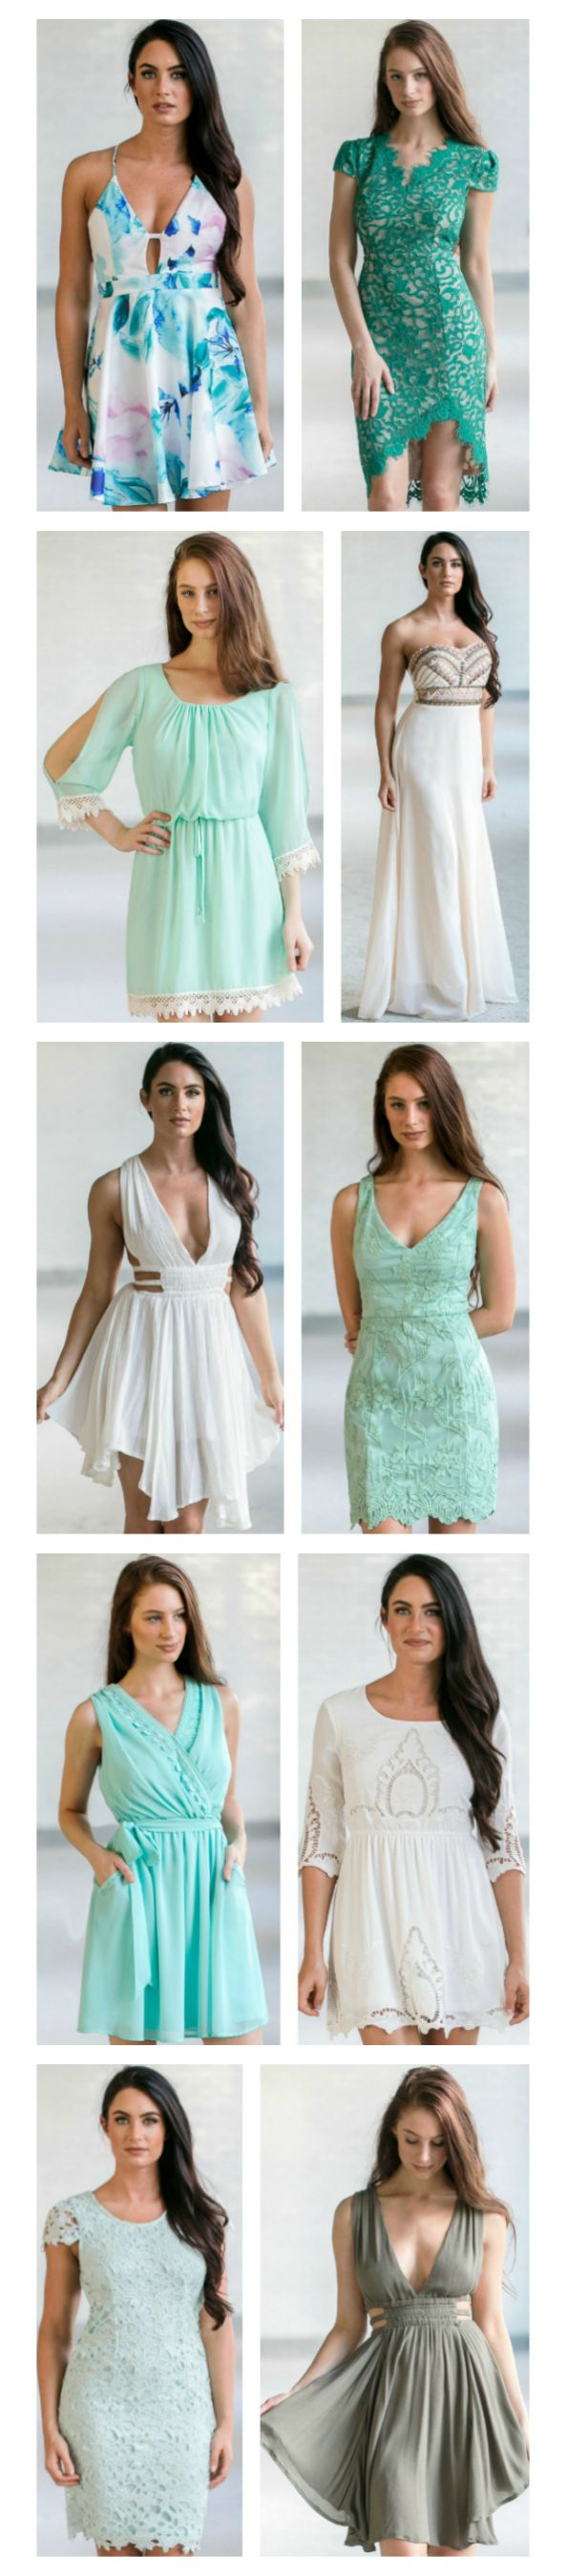 Cute New Arrivals at www.lilyboutique.com! FREE Shipping Over $75!